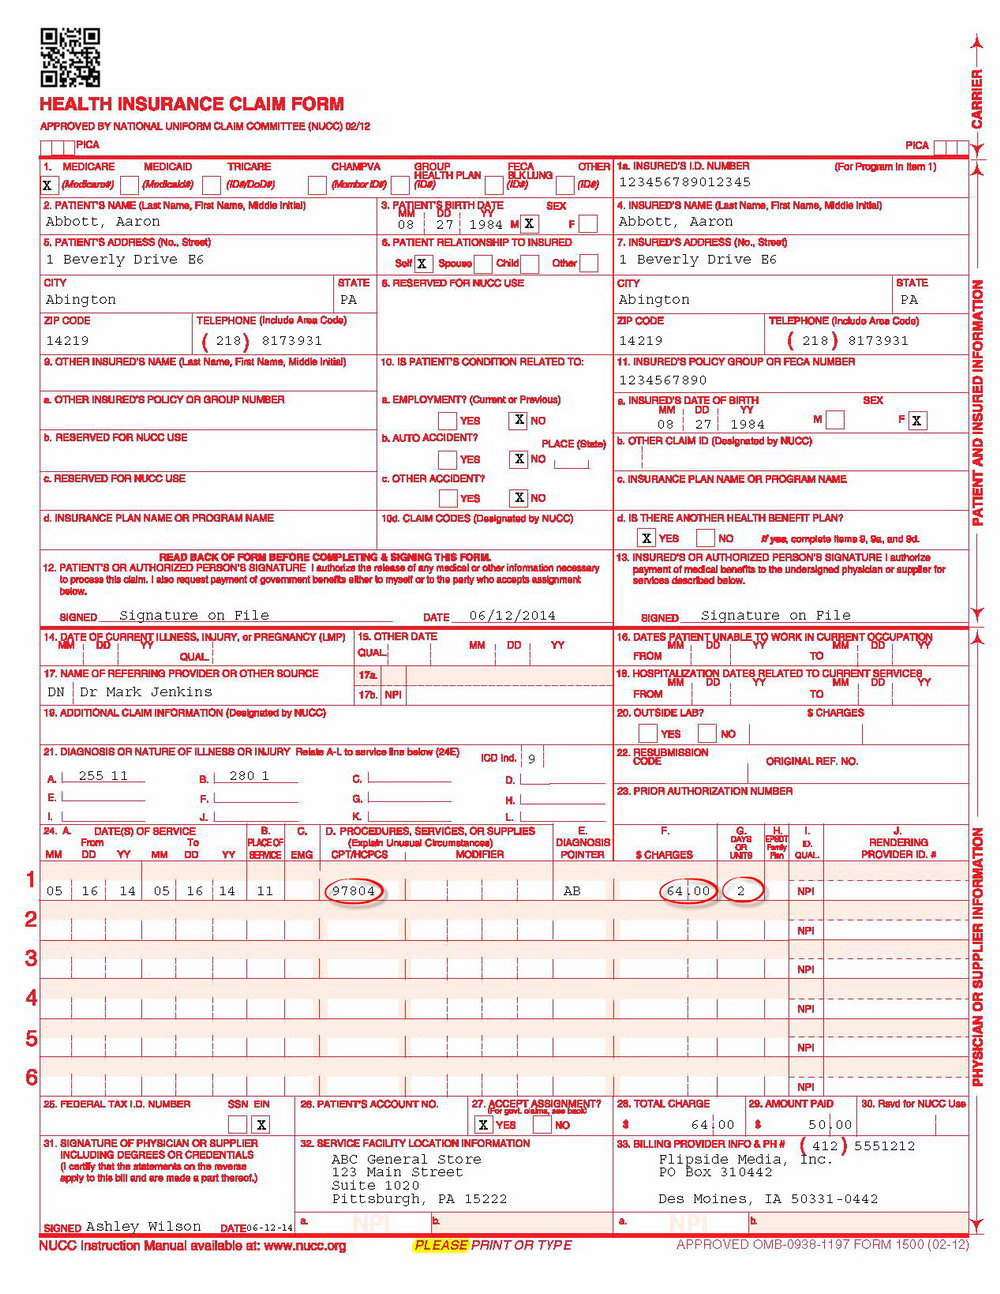 Cms 1500 Form Download